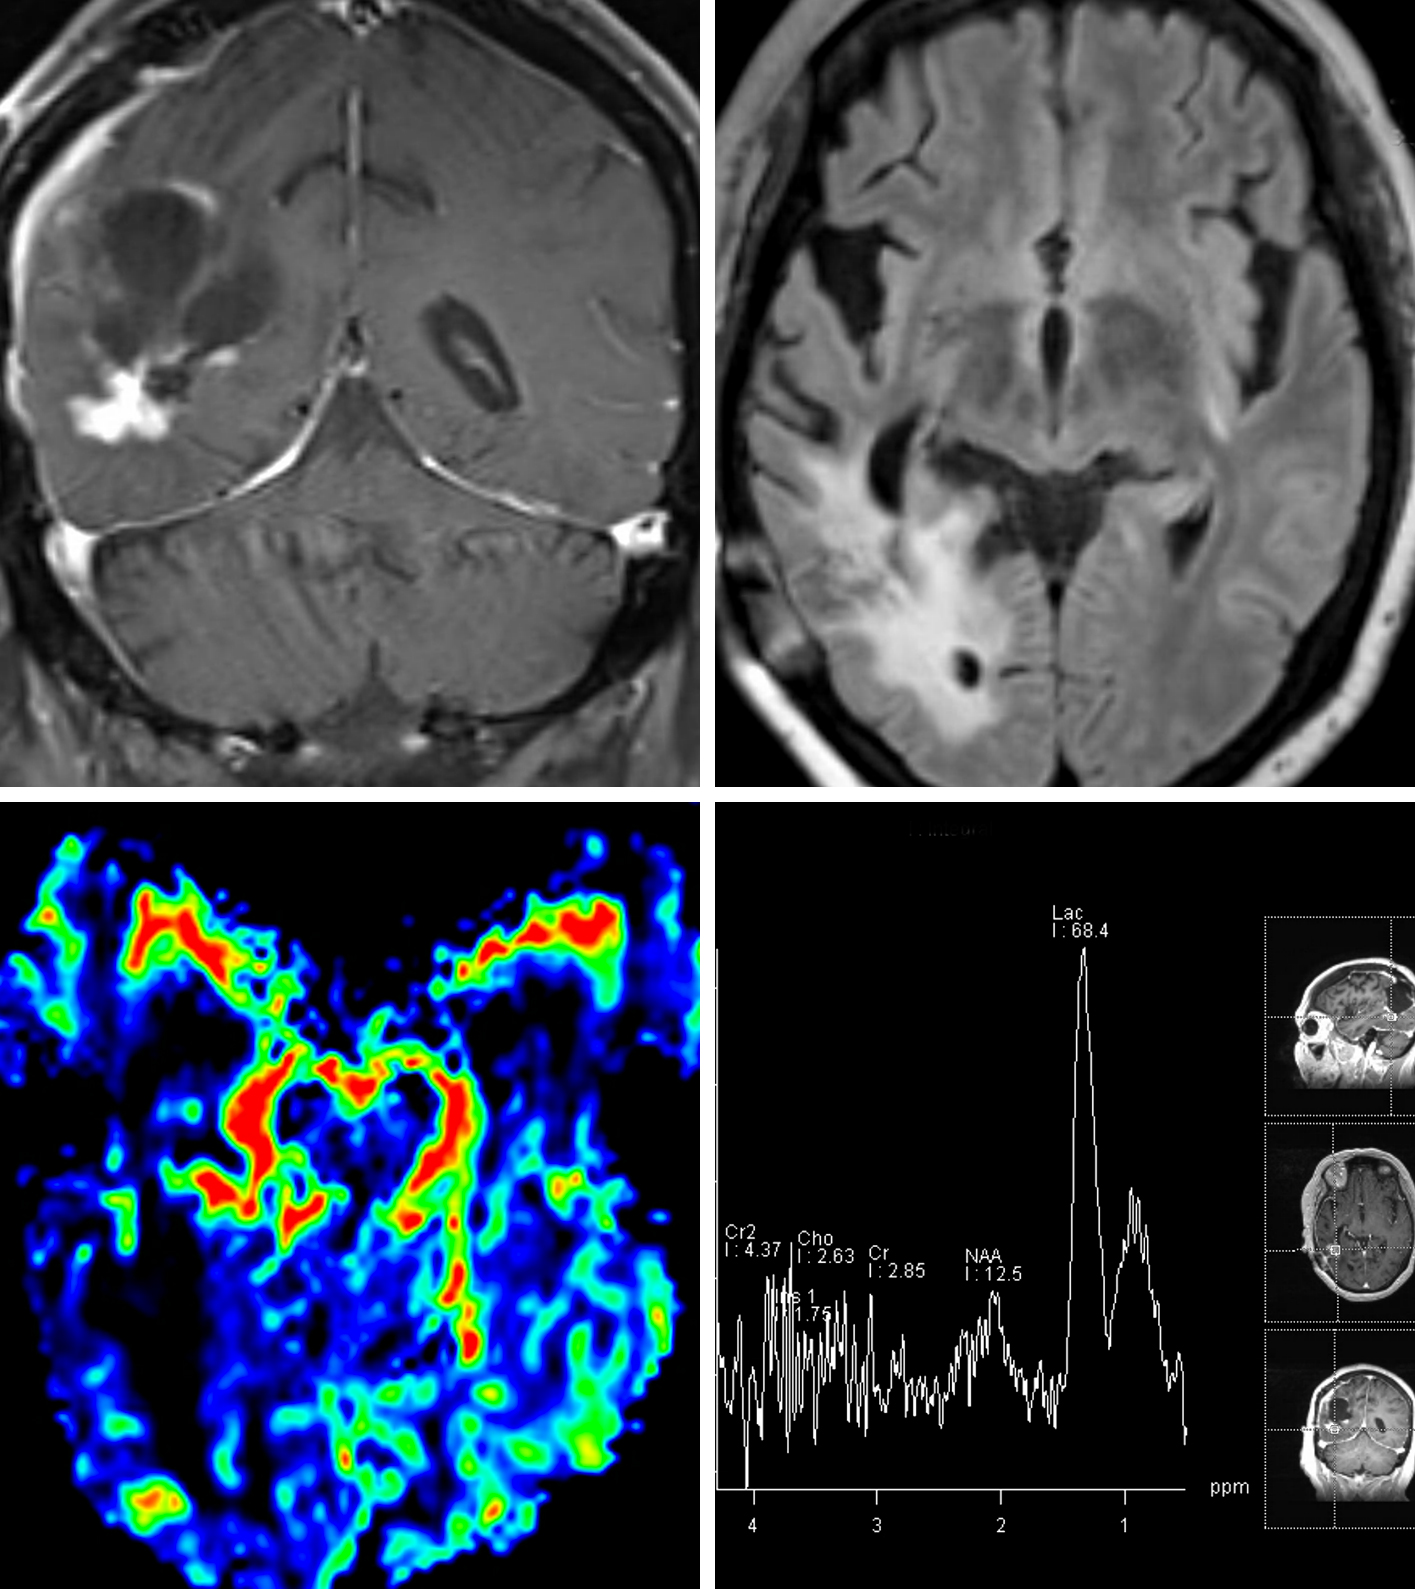 Figure 11: Coronal T1-weighted postcontrast fat-sat image (top left) demonstrates an enhancing nodule with surrounding FLAIR hyperintensity (top right) along the inferior aspect of the resection cavity in the right parietal lobe in this patient who is status post surgical resection and radiation for glioblastoma. (Bottom Left) No overt hyperperfusion is seen on rCBV perfusion images. (Bottom Right) Spectroscopy of the lesion demonstrates significant elevation of lactate with depression of other metabolites. The spectroscopic findings and lack of hyperperfusion favor radiation necrosis.